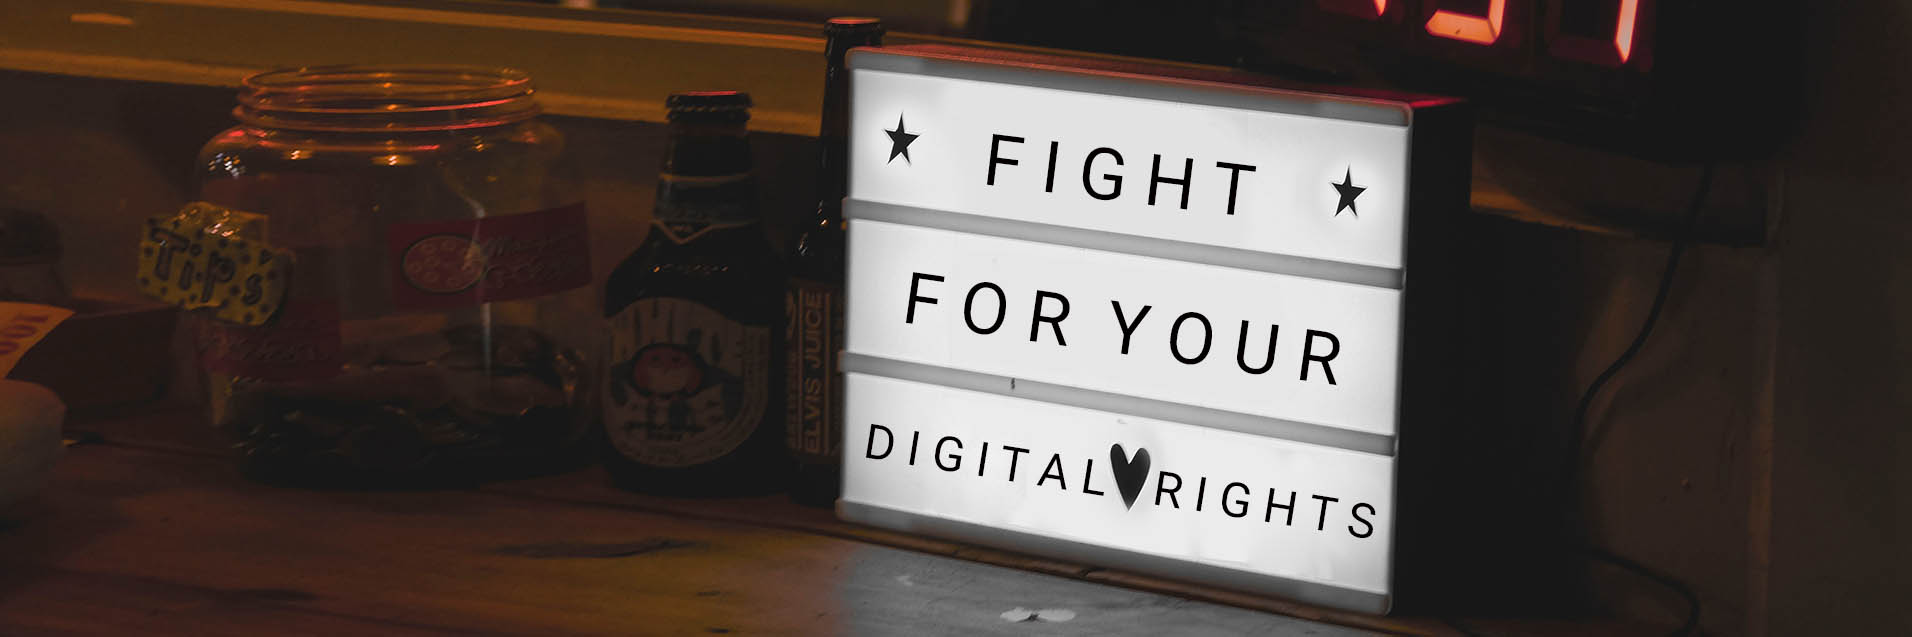 Anzeigetafel fight for your digital rights